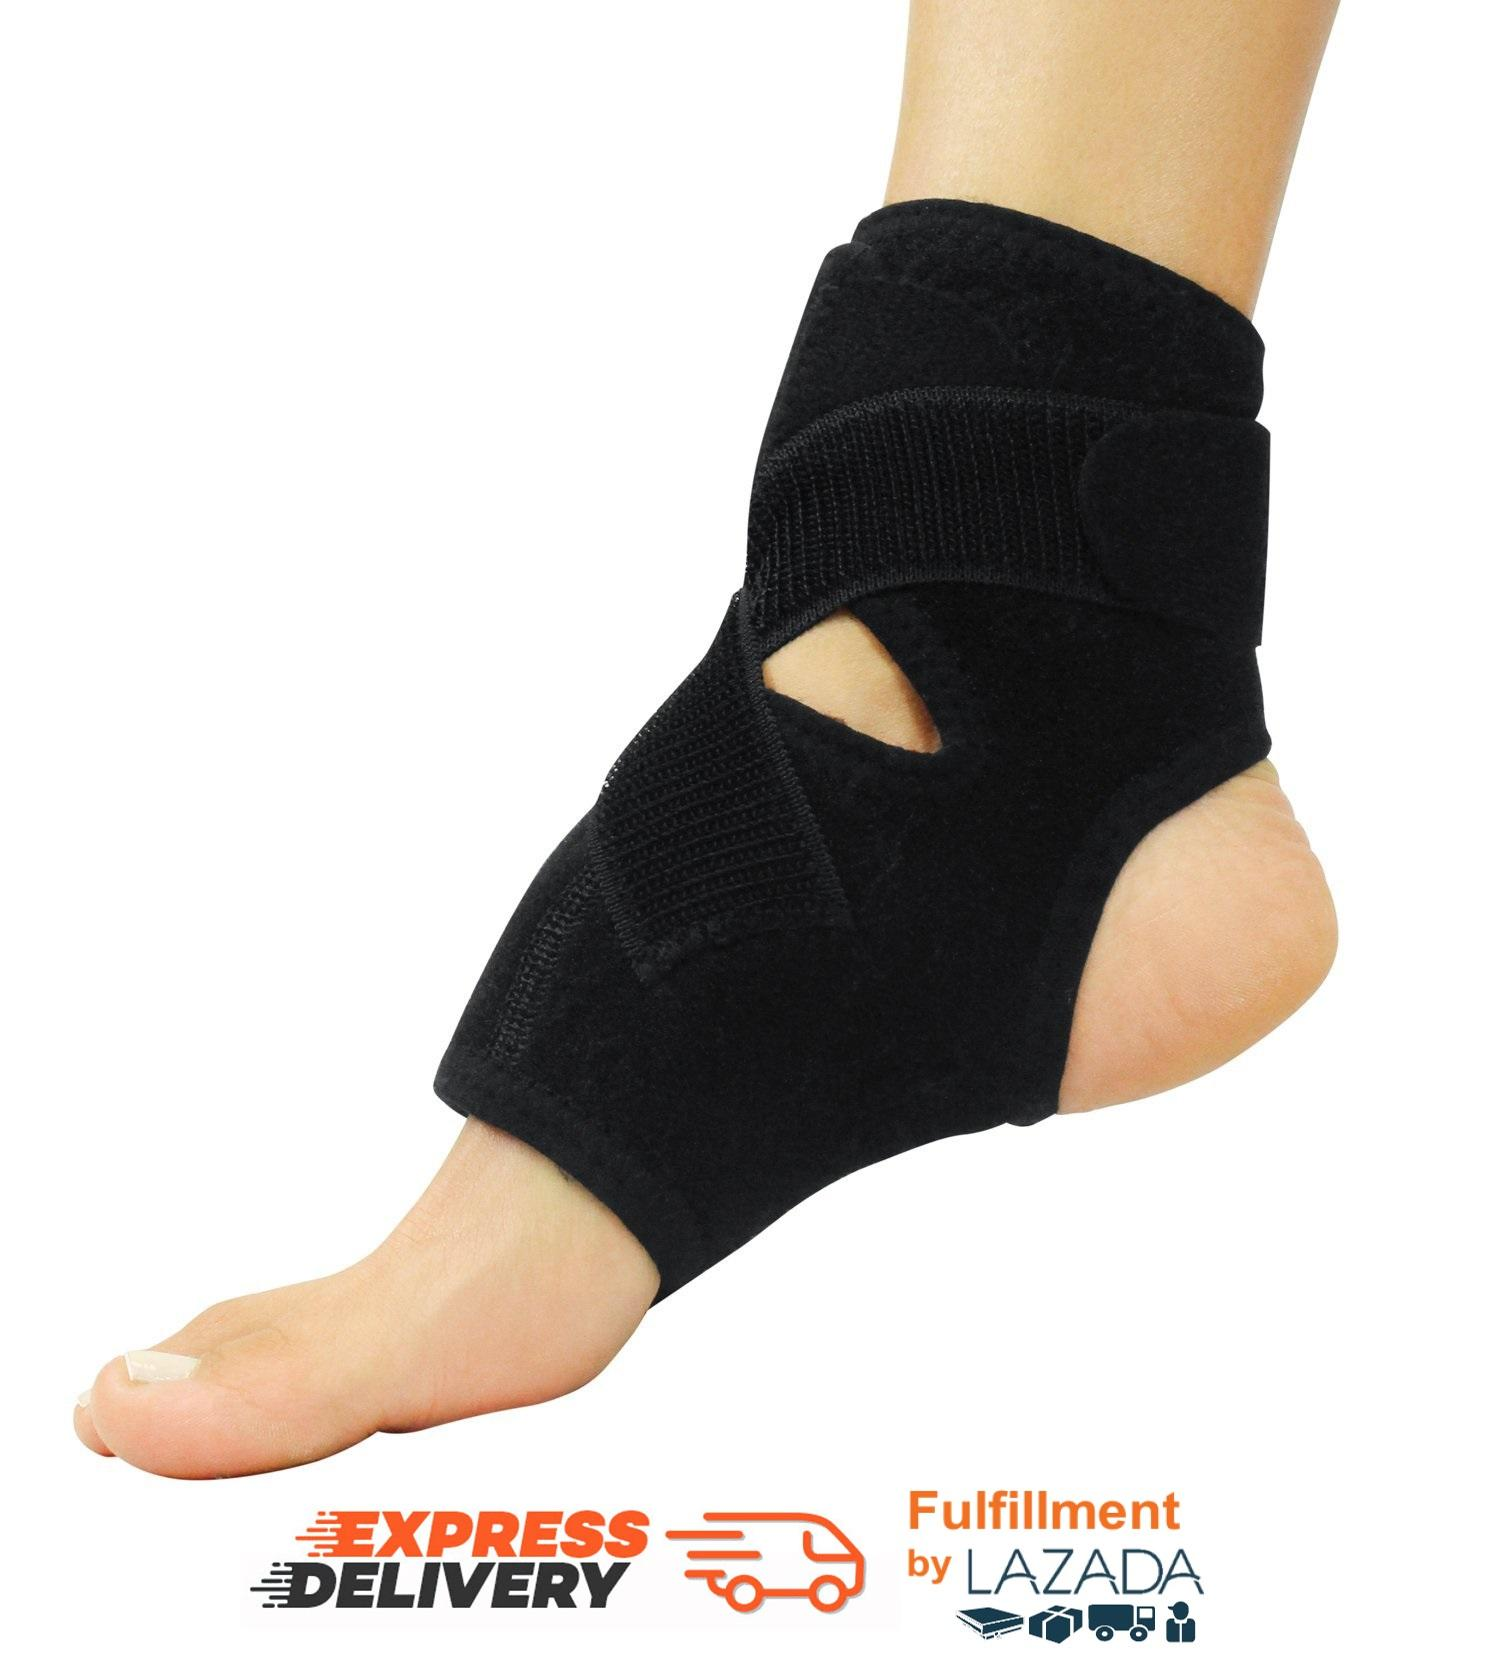 fitPH Ankle Brace - Adjustable Stabilizer Sleeve with Support Guard for Peroneal Tendonitis Running, Soccer